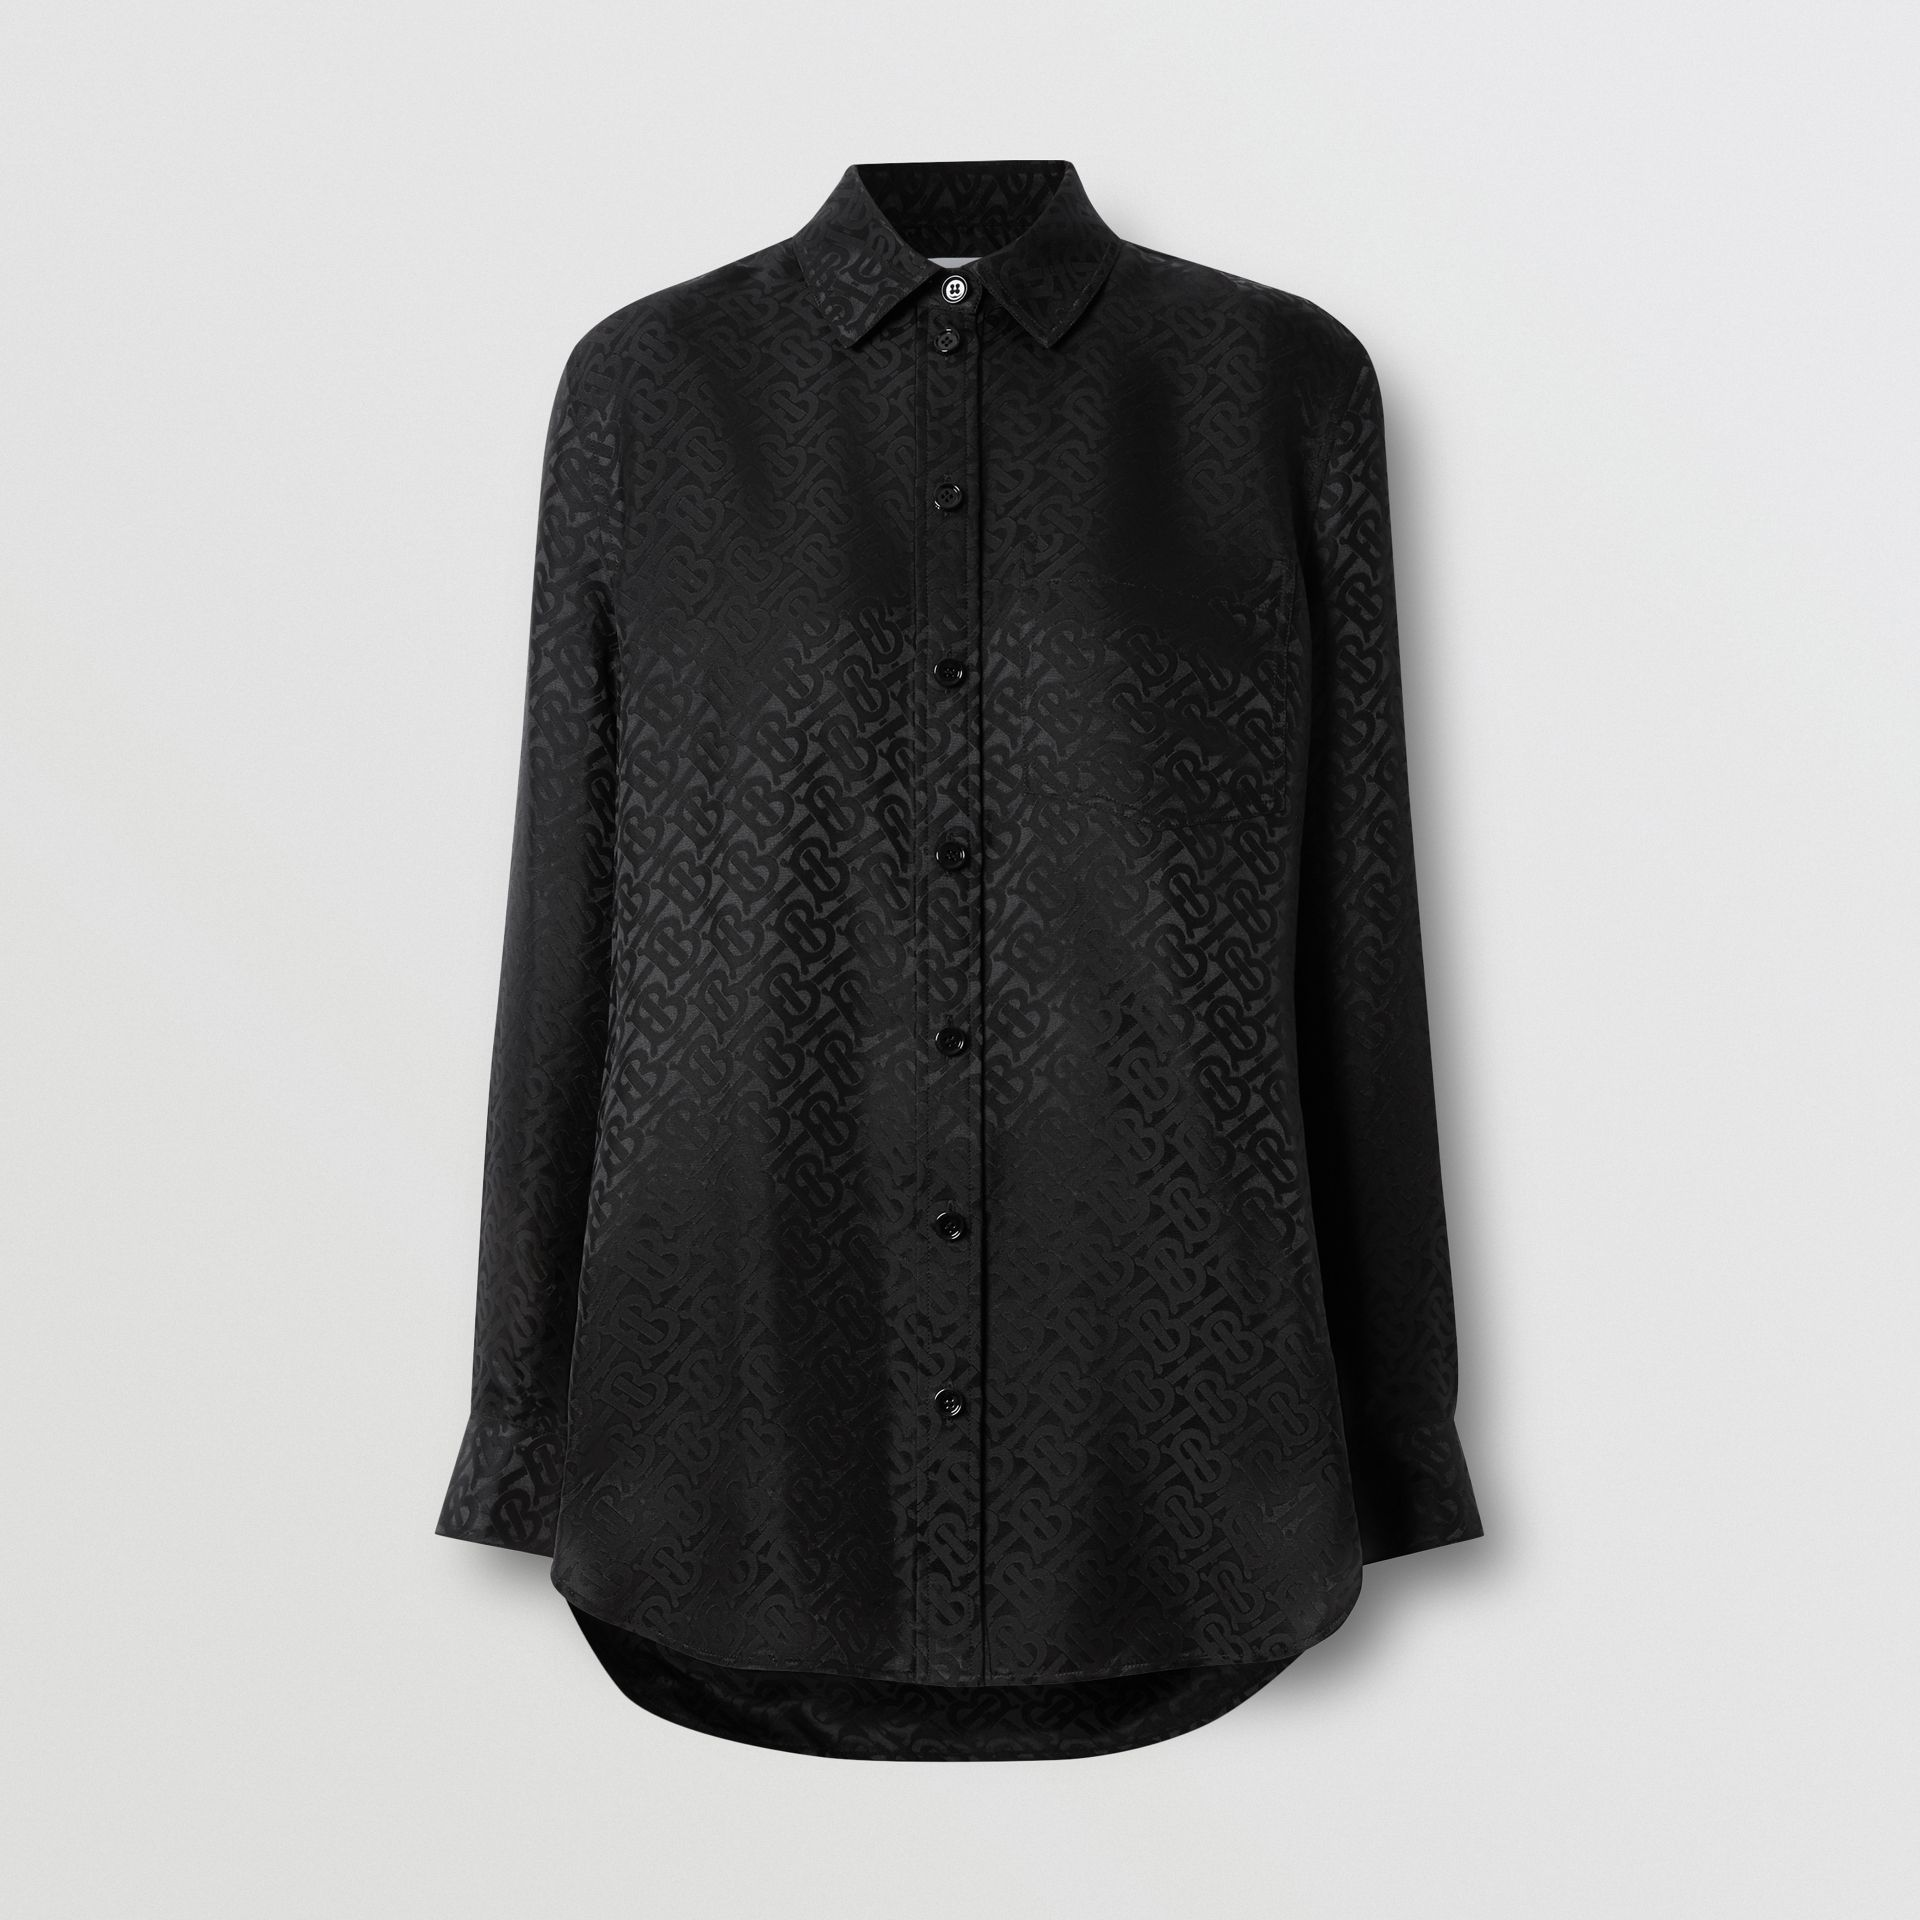 Monogram Silk Jacquard Shirt in Black - Women | Burberry United Kingdom - gallery image 3